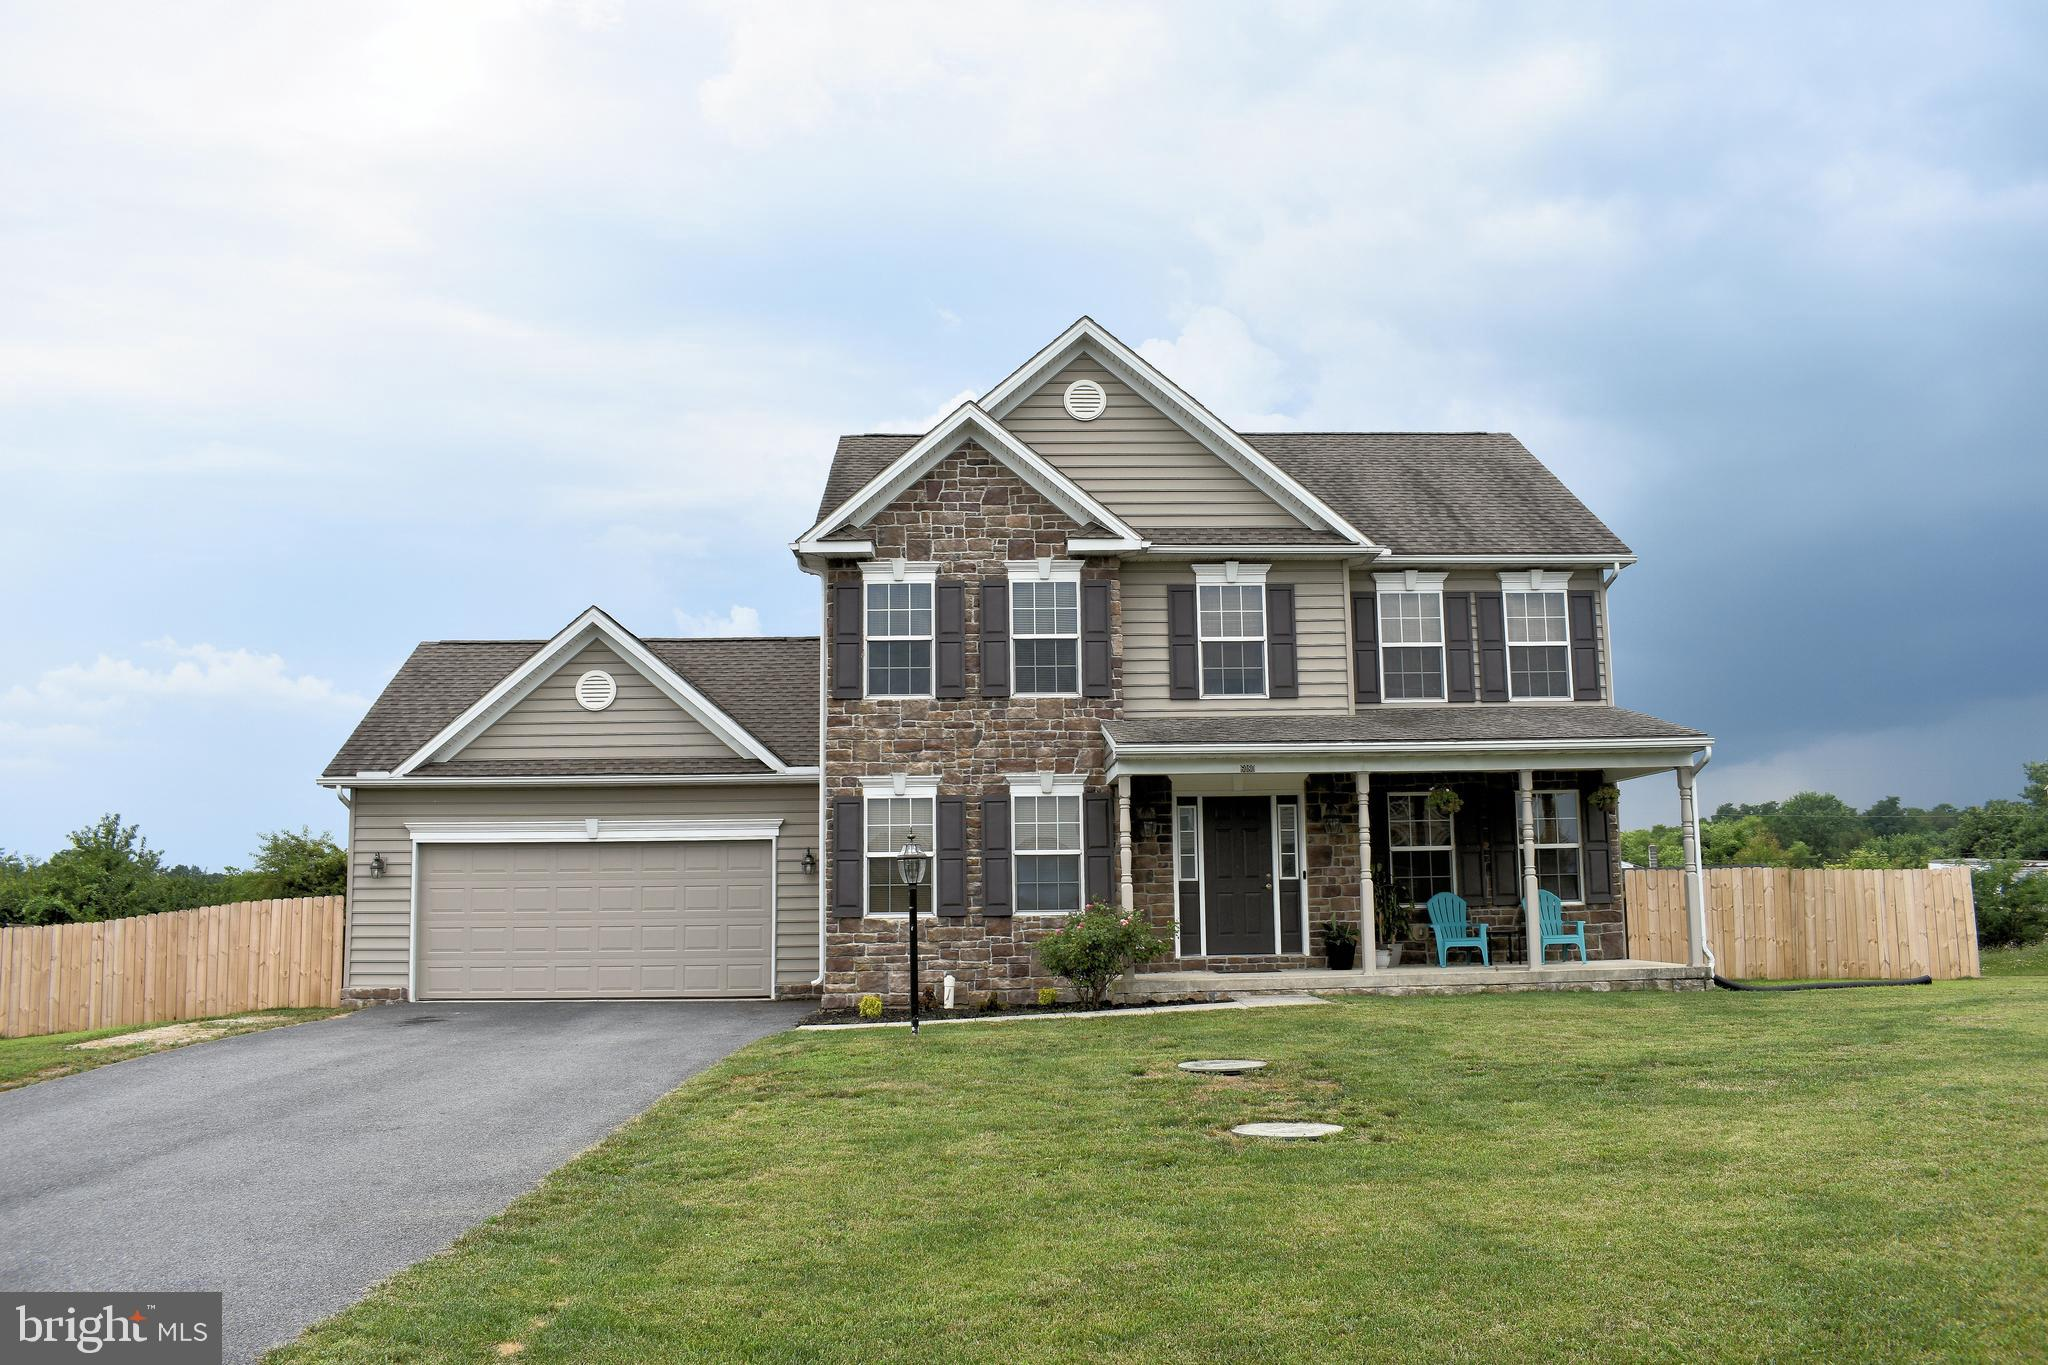 6080 BETTEKER LANE, SAINT THOMAS, PA 17252